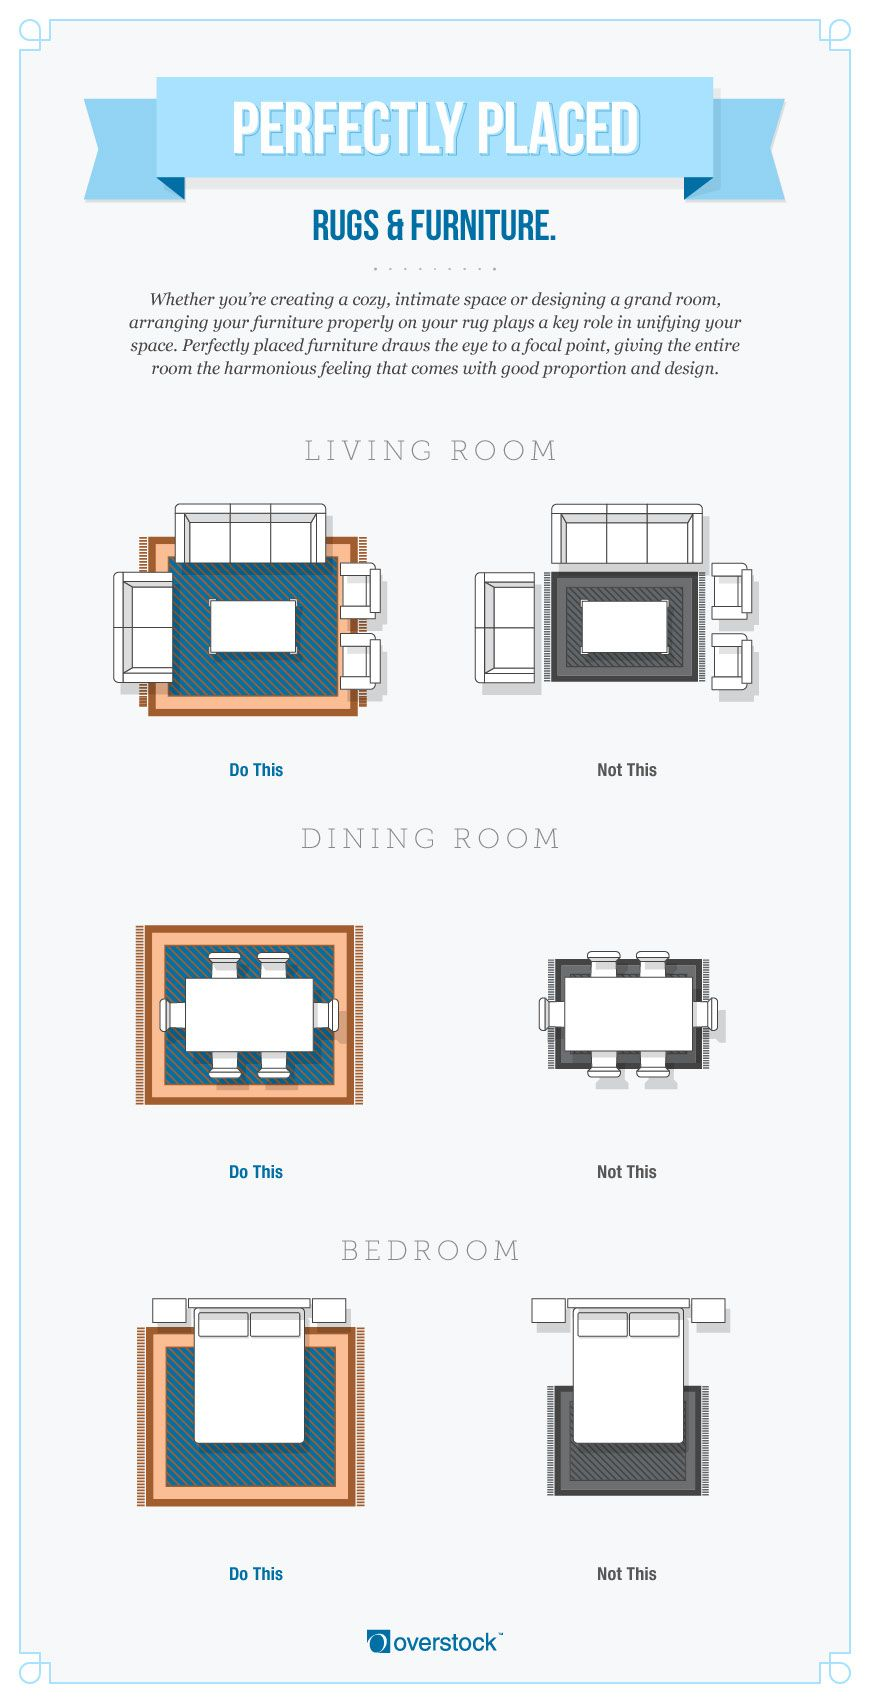 The Complete Guide To Choosing An Area Rug Overstock Com Living Room Rug Placement Rugs In Living Room Bedroom Rug Placement